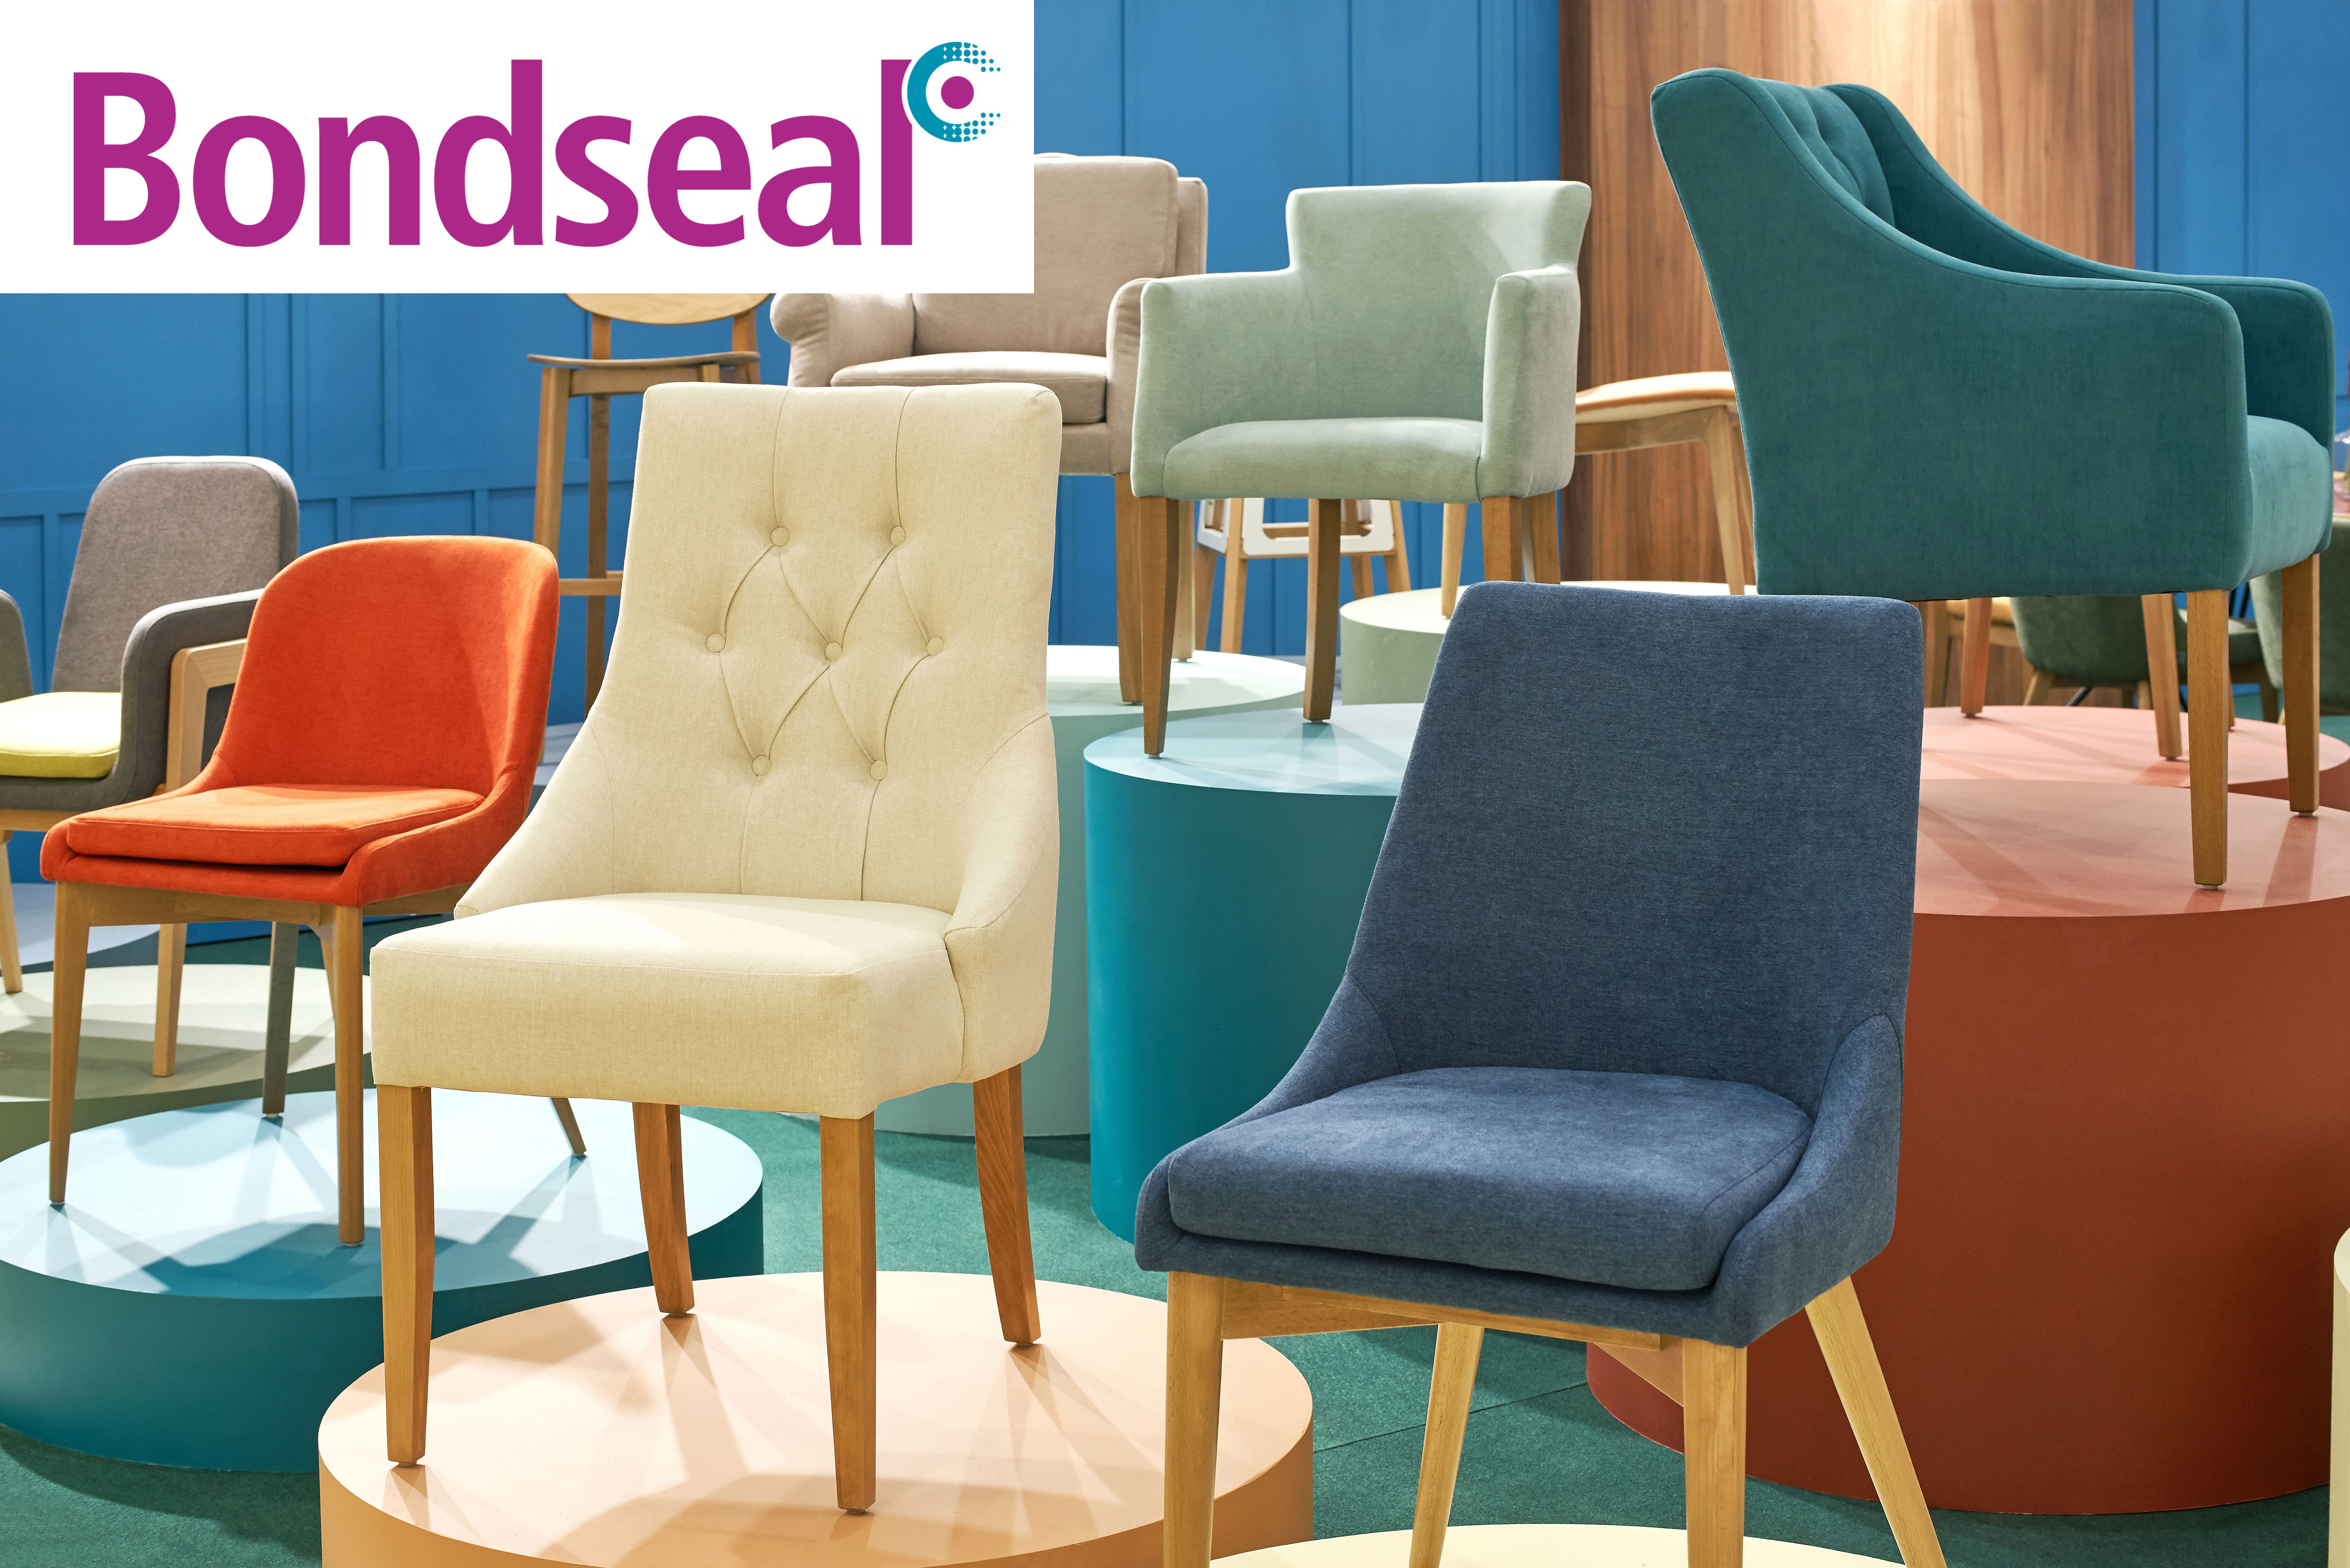 Bondseal-Furniture-Adhesive_Upholstry-Adhesives_Chemique-Adhesives